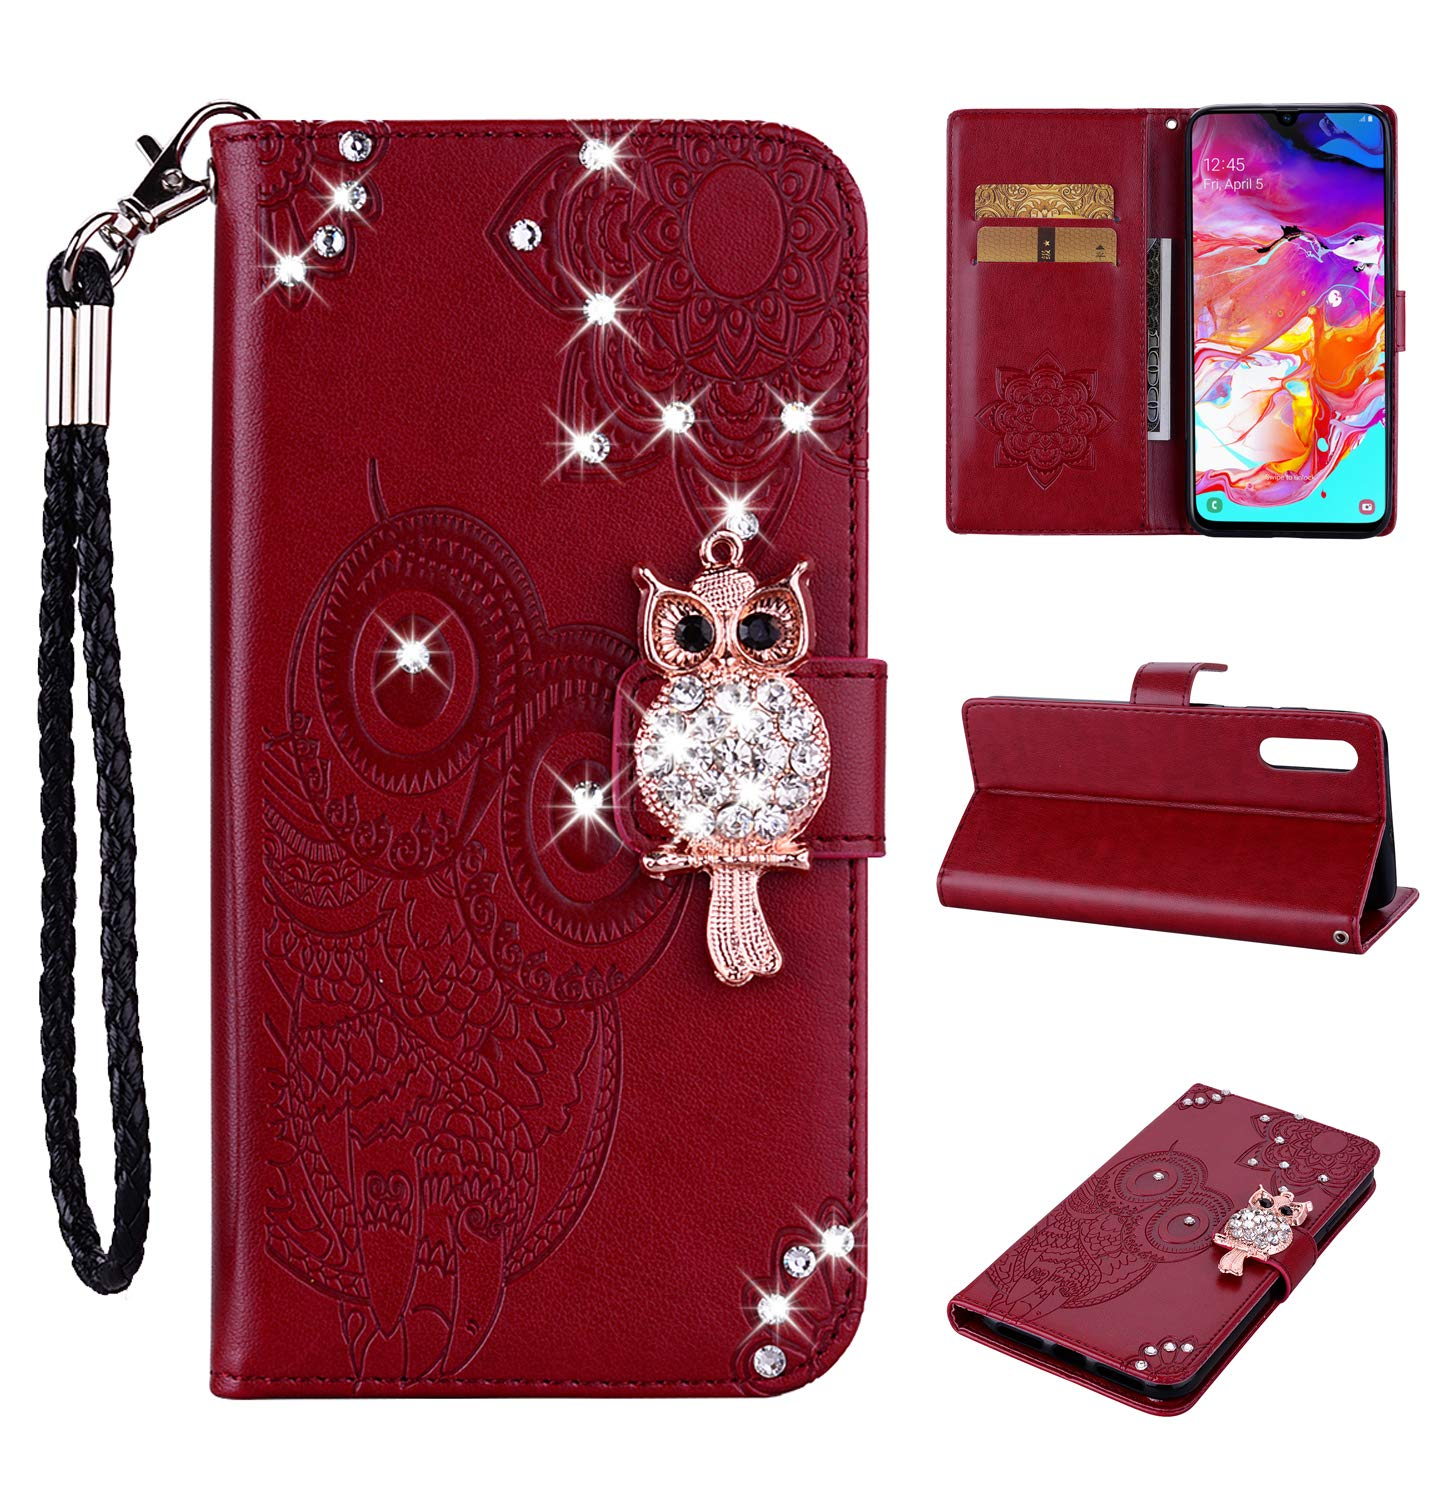 Amocase Wallet Case with 2 in 1 Stylus for Samsung Galaxy A50,3D Bling Gems Owl Magnetic Mandala Embossing Premium Strap PU Leather Card Slot Stand Case for Samsung Galaxy A50 - Red Brown by Amocase